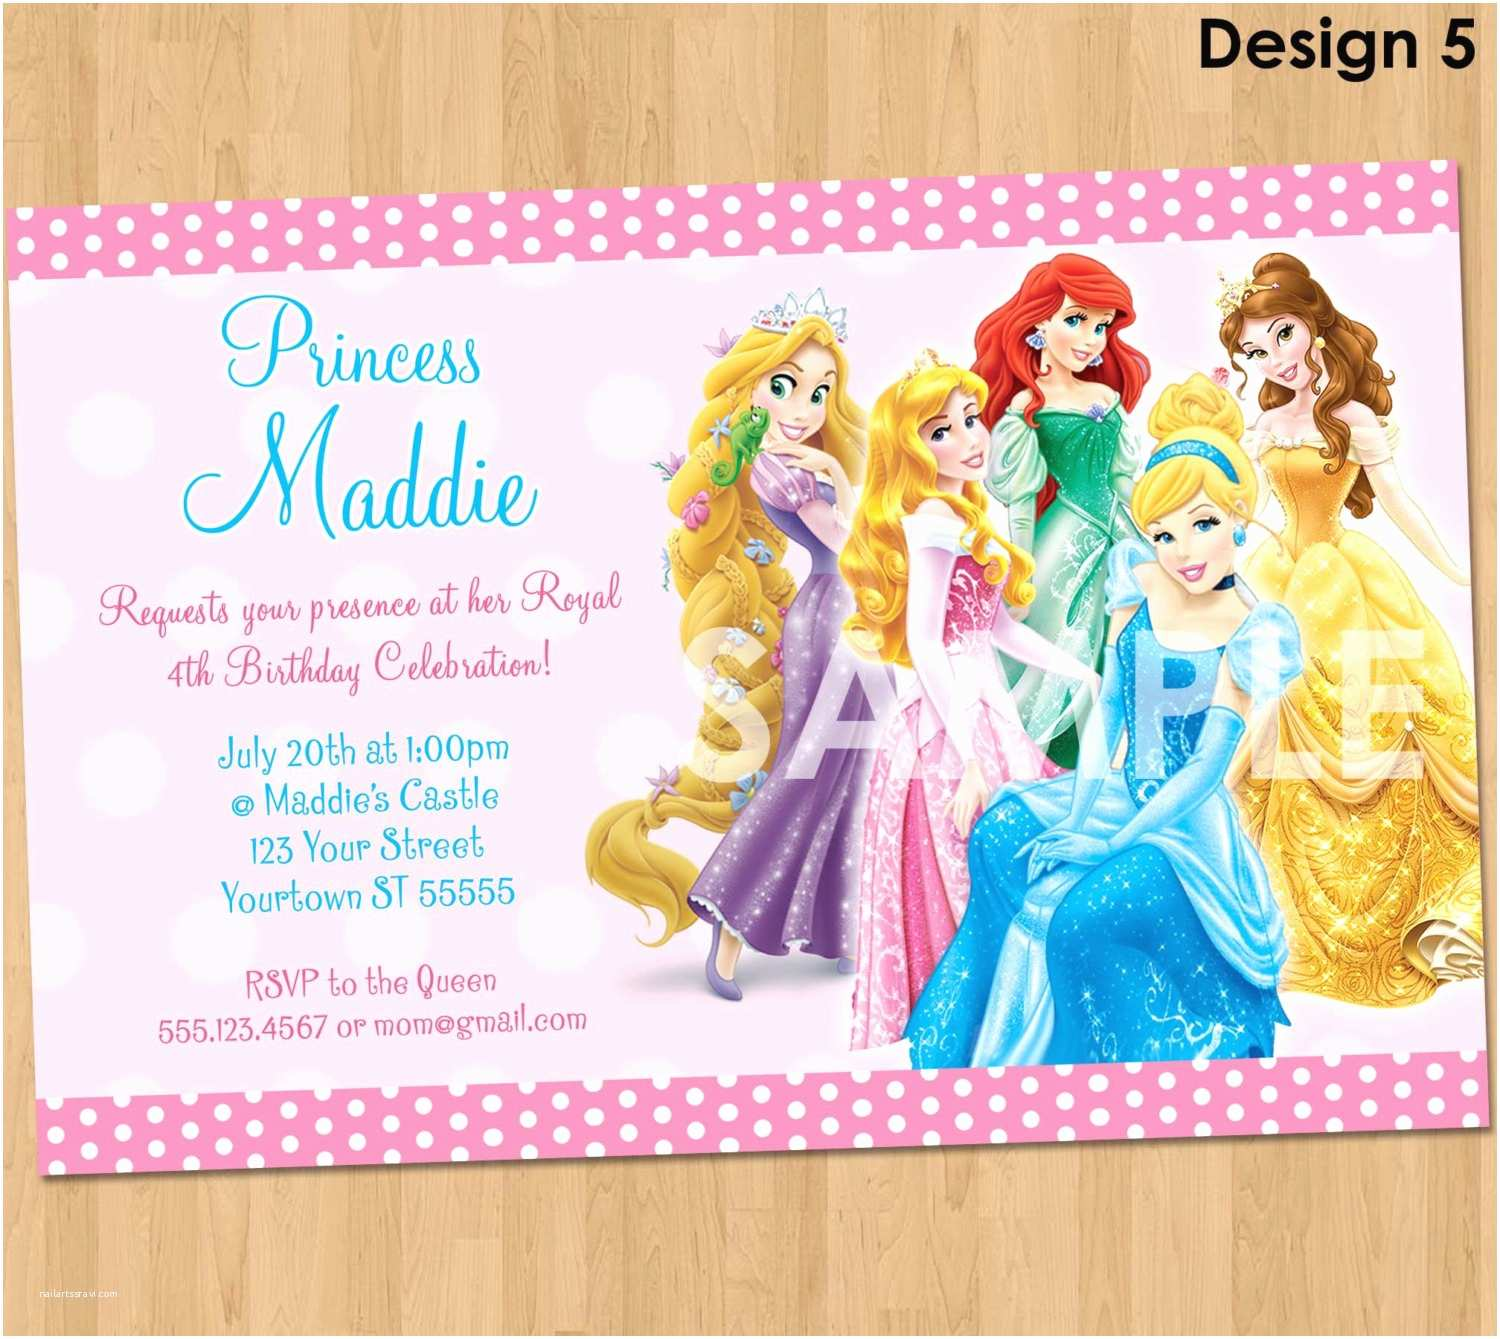 Disney Princess Birthday Invitations Princess Invitation Disney Princess Invitation Birthday